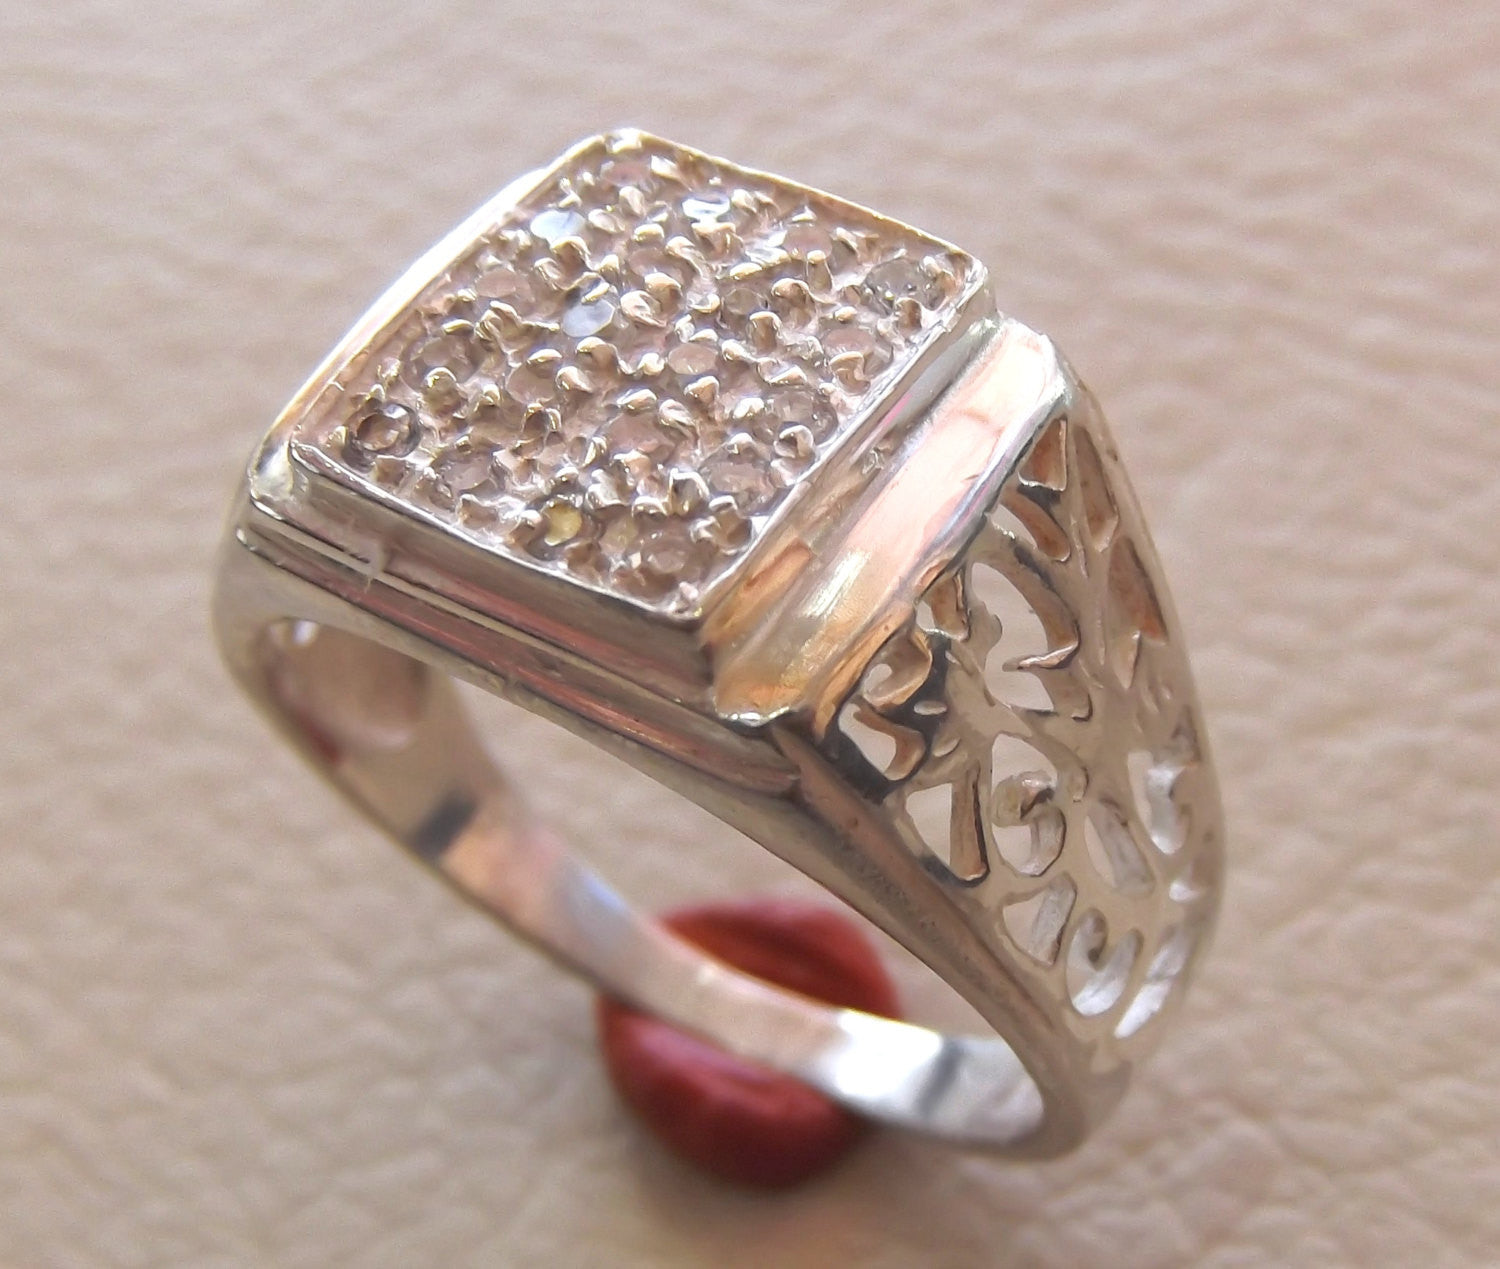 white cubic zircon pave setting sterling silver 925 ring rectangular face multi stone handmade any size fast shipping jewelry